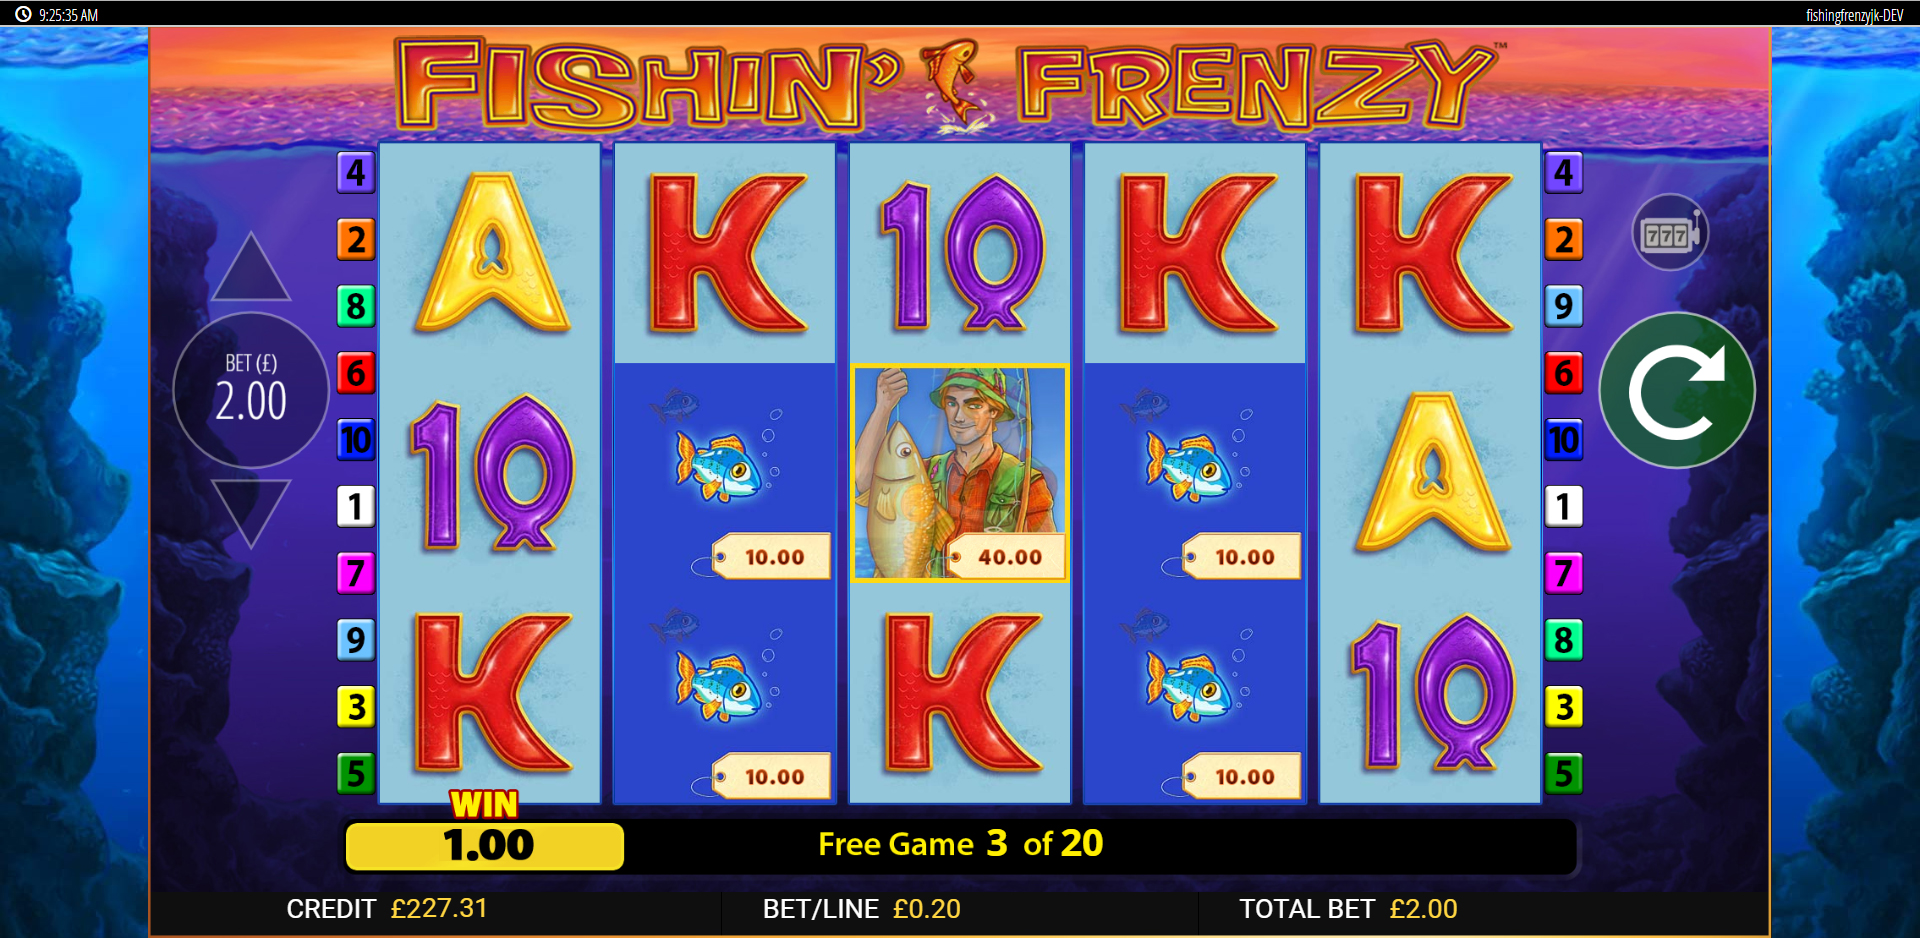 free-spins-2